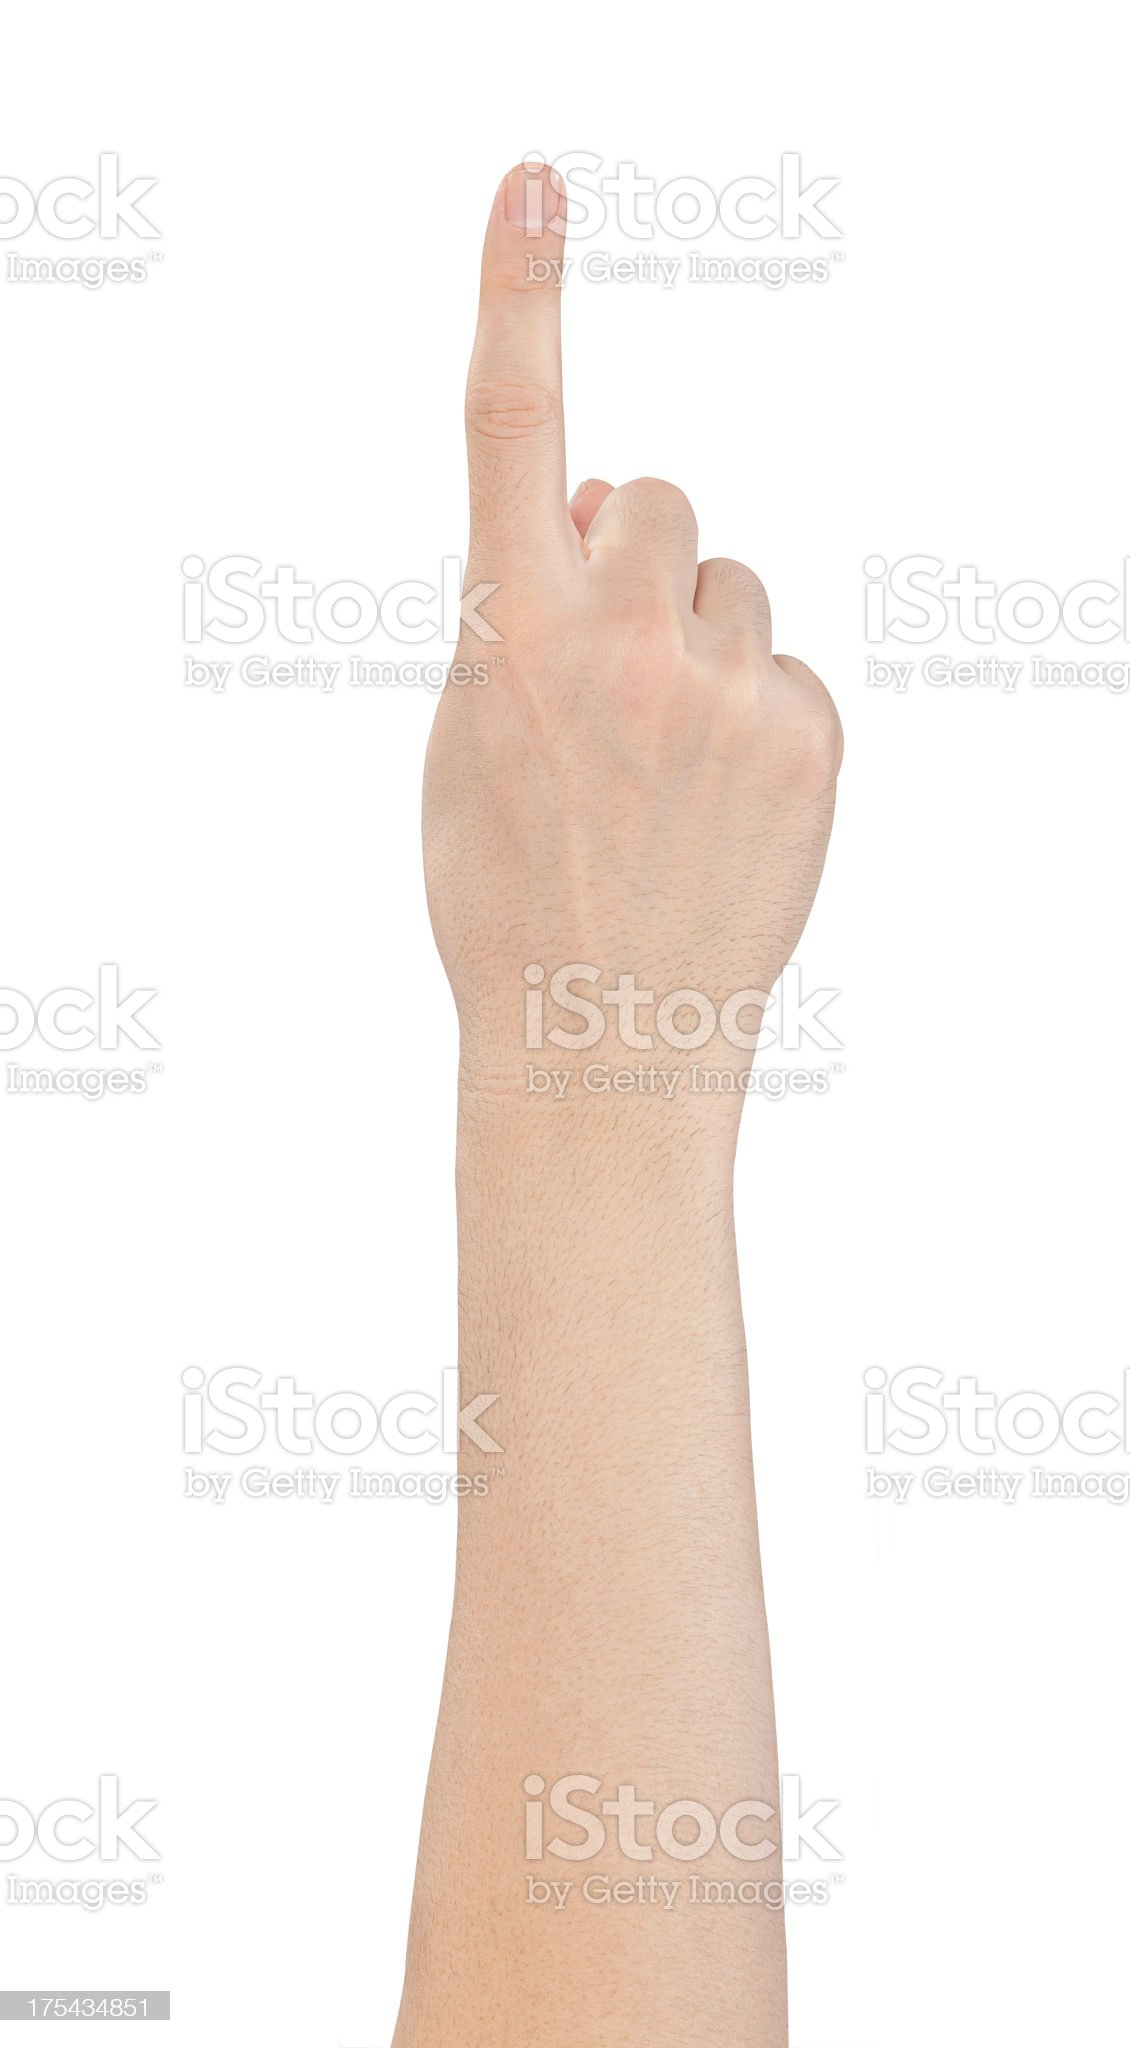 Hand showing one finger on white background royalty-free stock photo